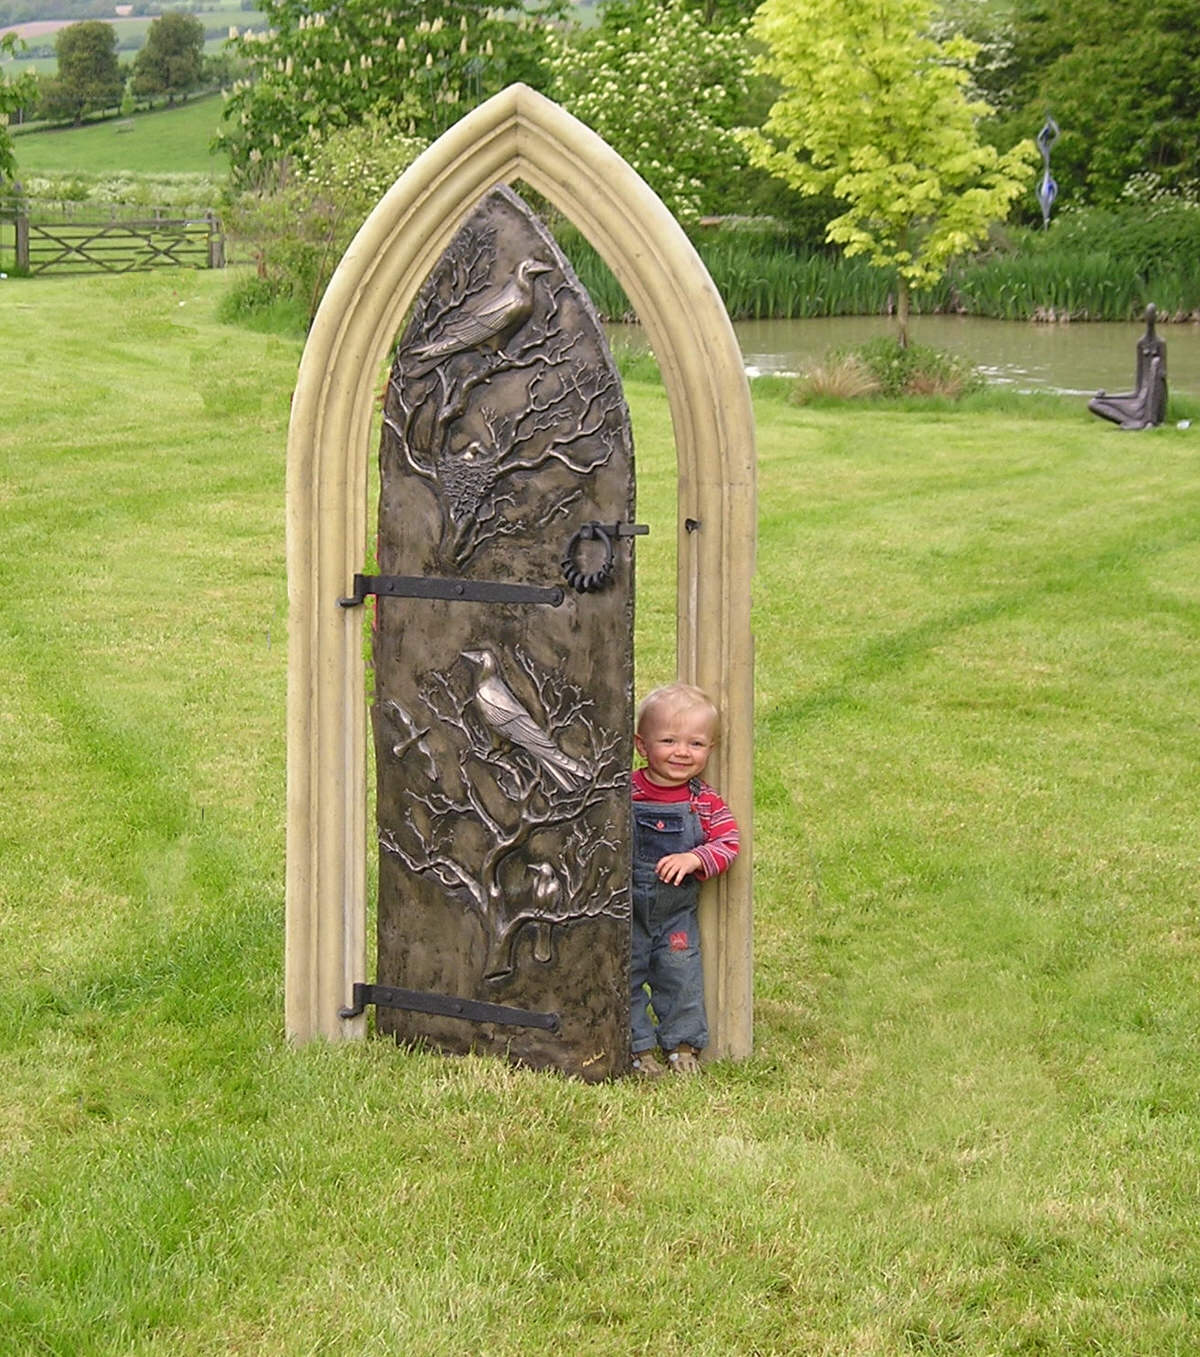 Secret Garden Door Freestanding landscape sculpture garden sculpture panel for ugly wall enchanted garden cottage garden by Mark Reed